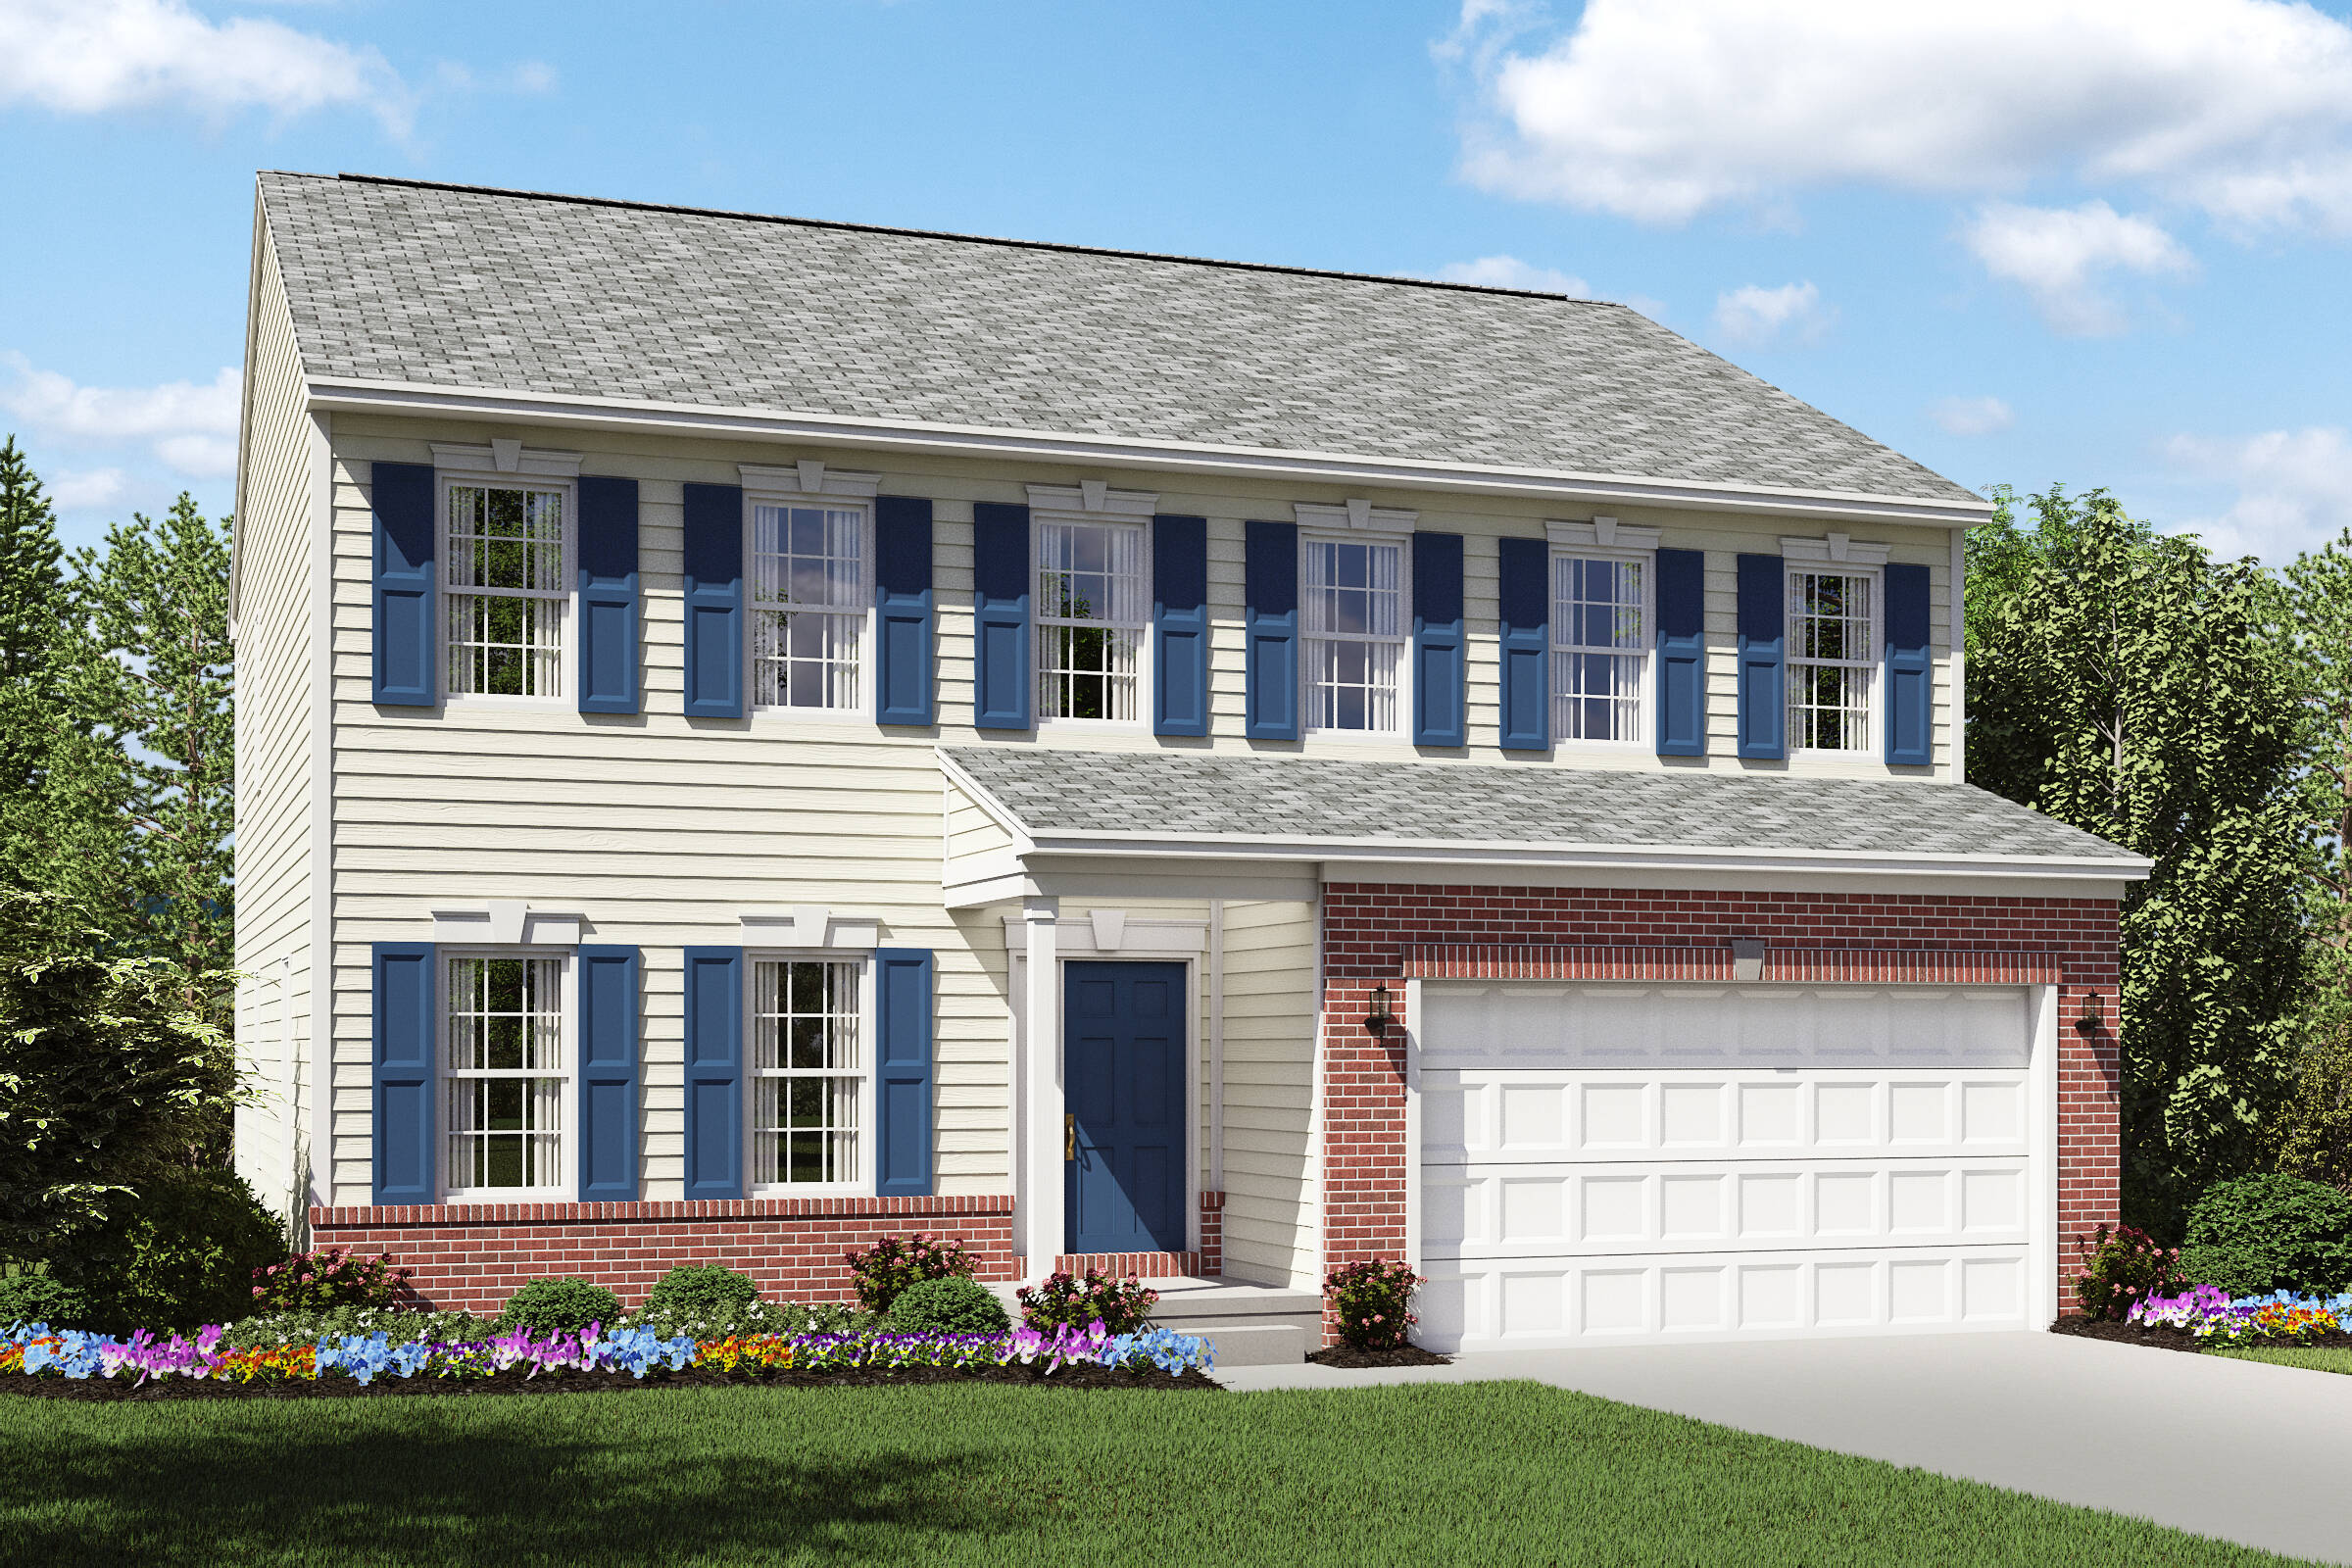 brantwood ab two story homes for sale cleveland